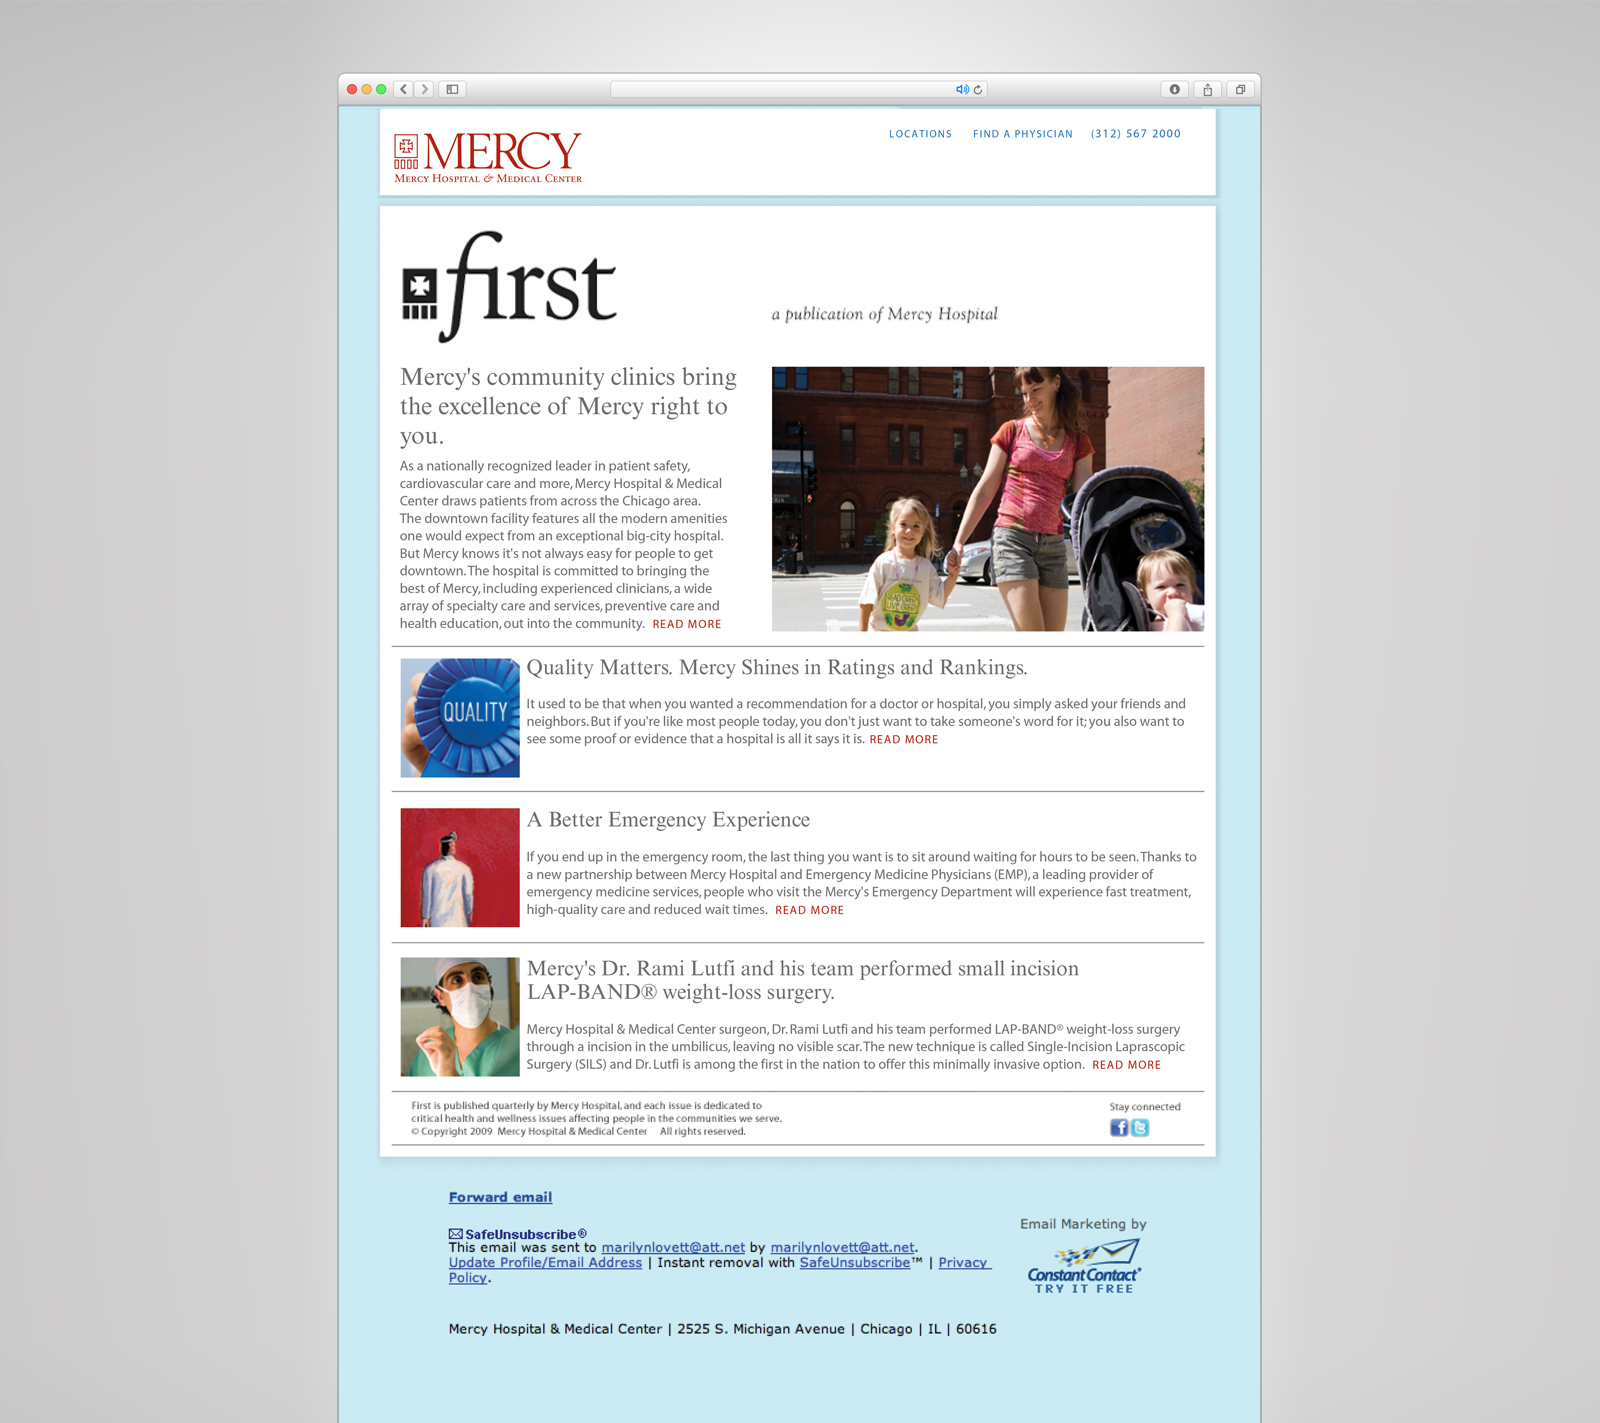 Mercy_First__IMG05